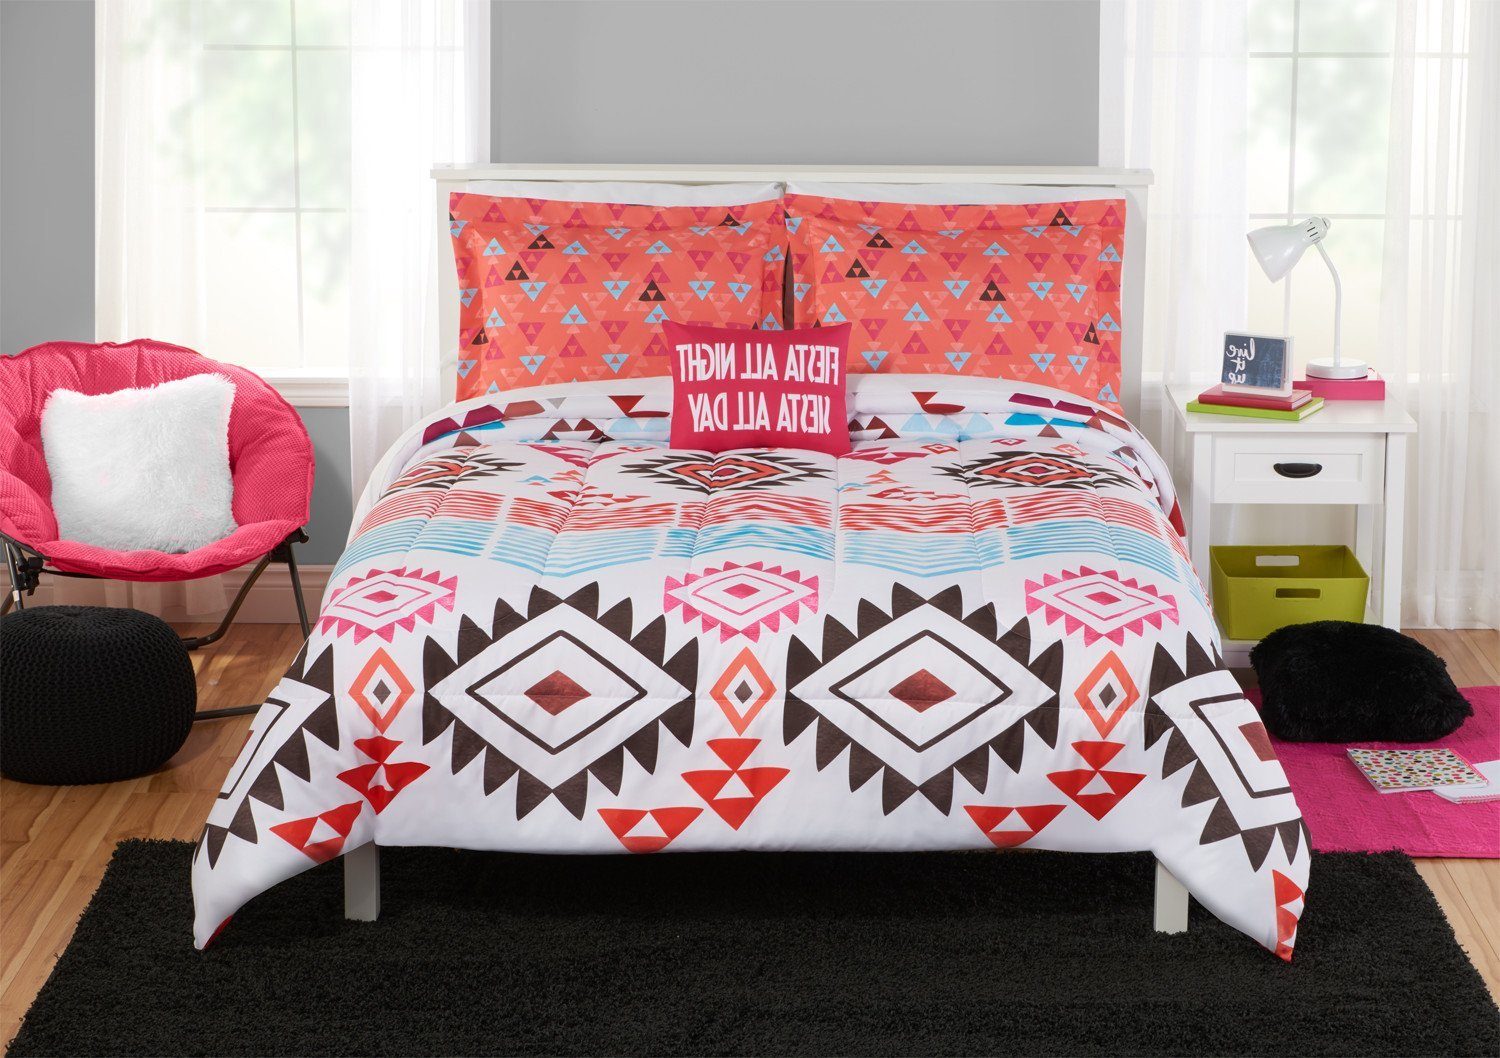 N2 4 Piece White Fiesta Mexican Pattern Comforter Full/Queen Set, Bohemian Tribal Bedding Southwest Aztec Black Orange Red Blue Triangles Native American Textiles, Reversible Solid Coral, Cotton